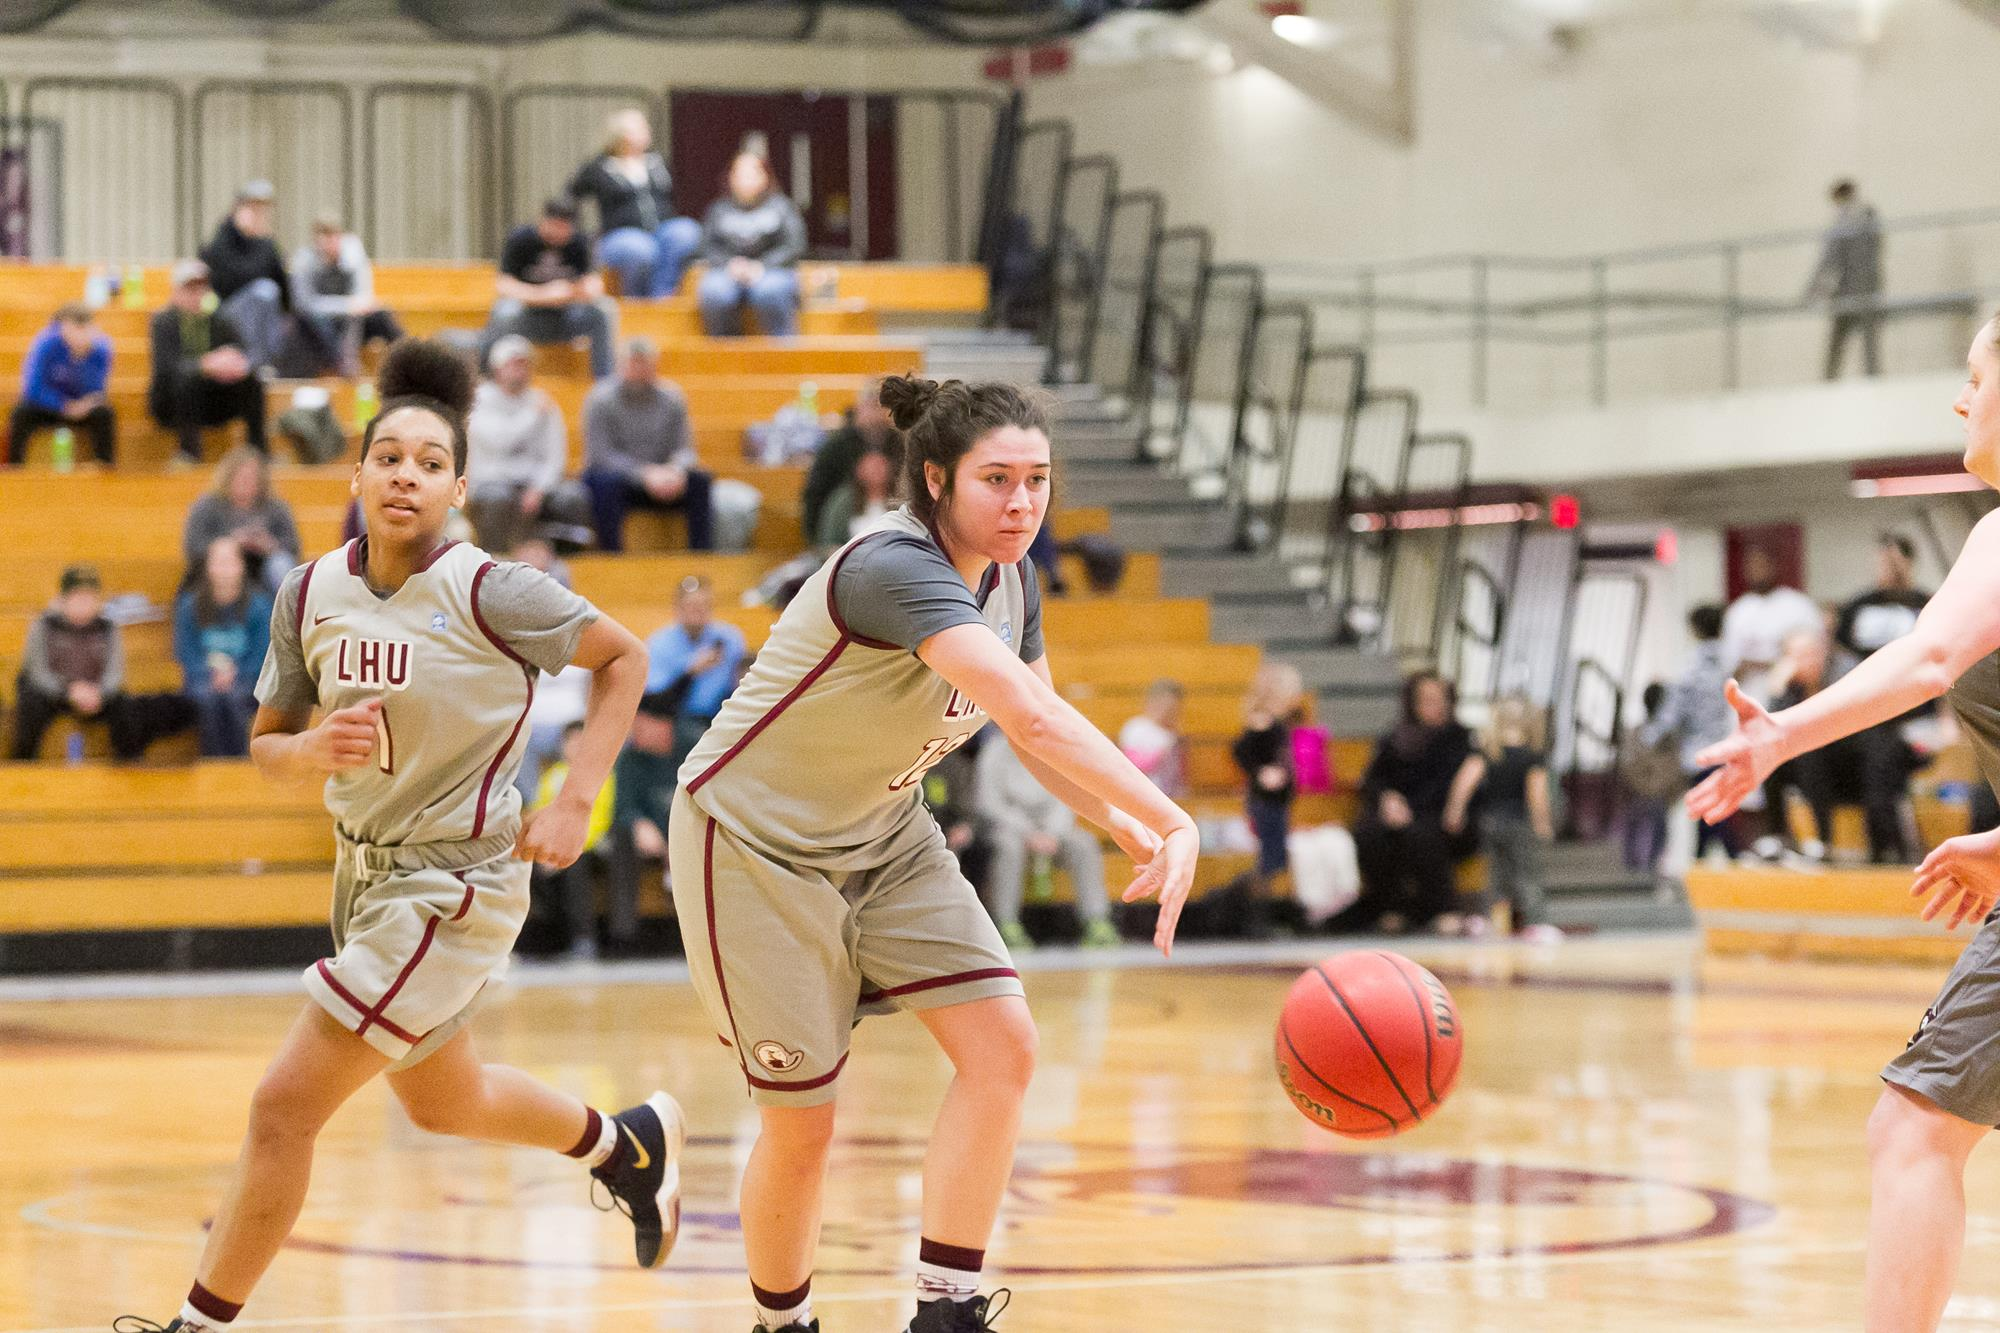 Lock Haven Bald Eagles women's Basketball- 2018 Schedule, Stats, Team Leaders & News | HERO Sports